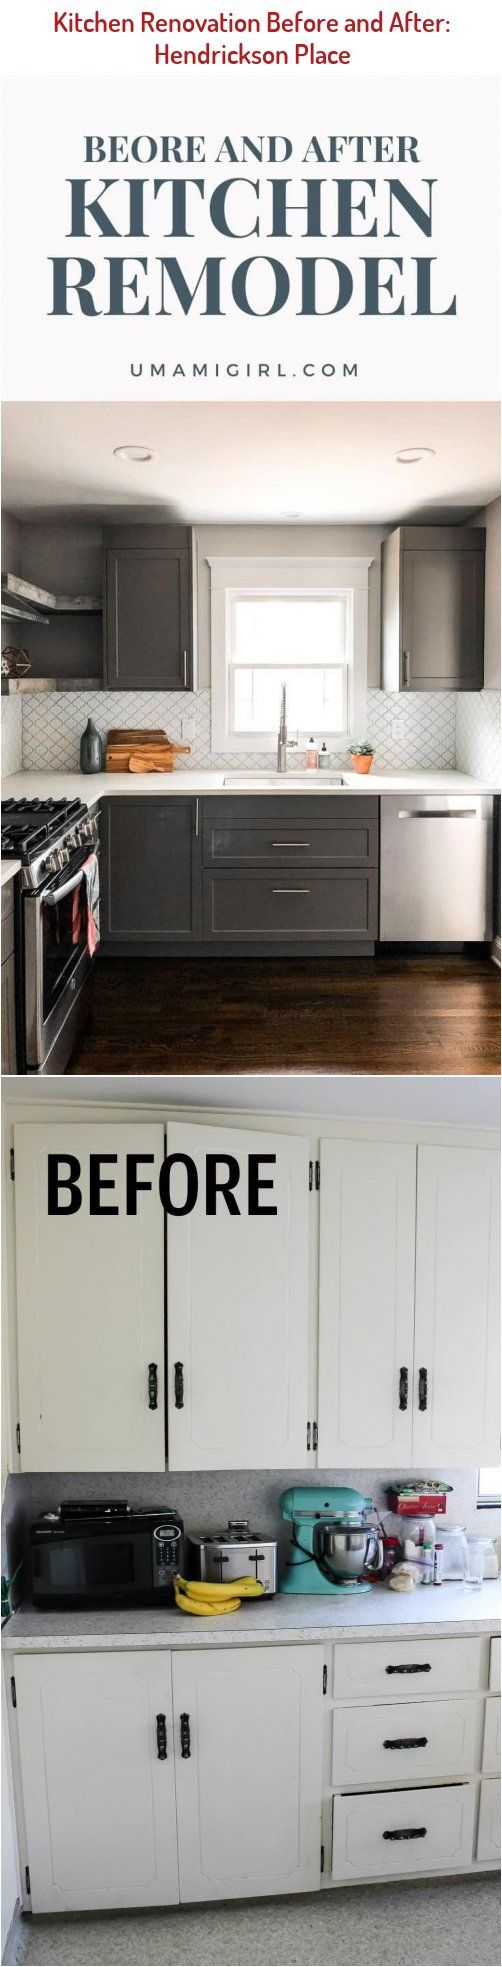 Pin On Home Renovation Before And After